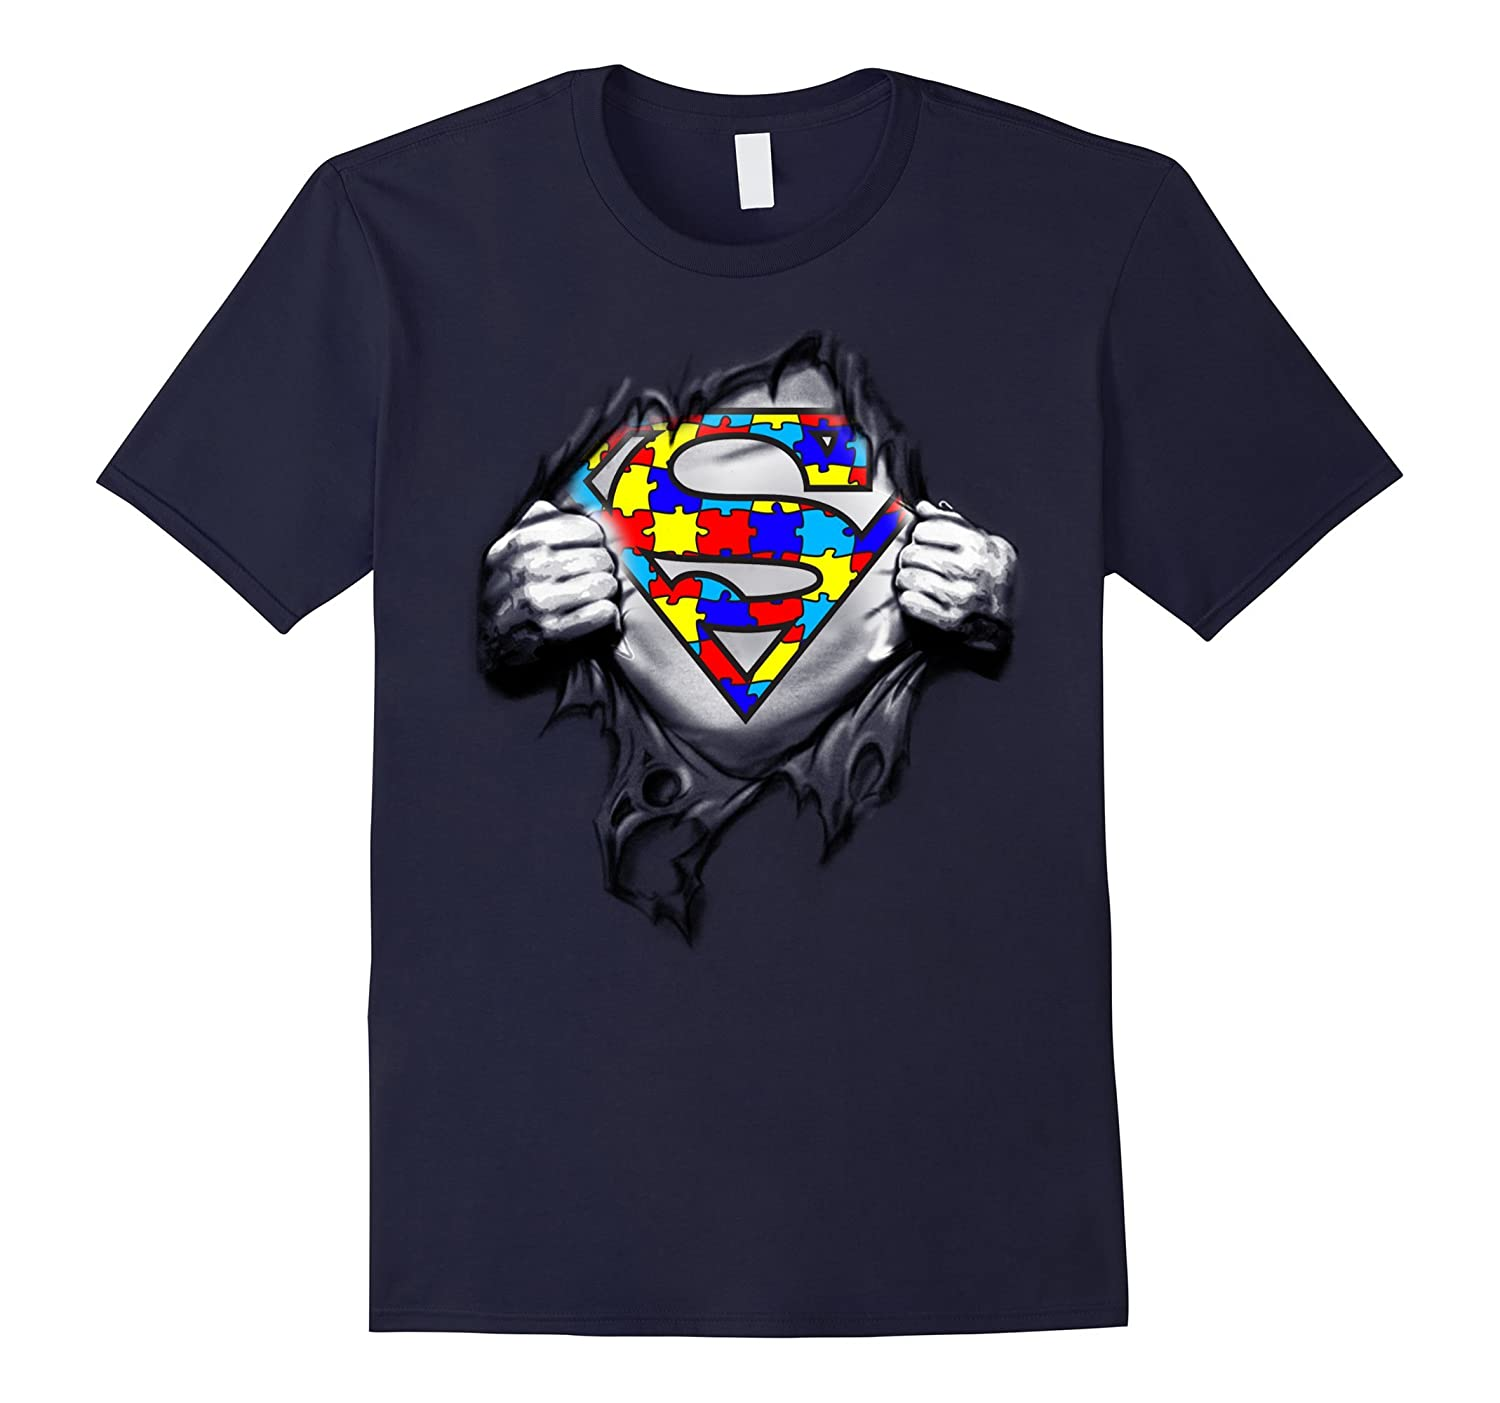 Autism Awareness Day Gifts Super Autism T-shirts color-Art